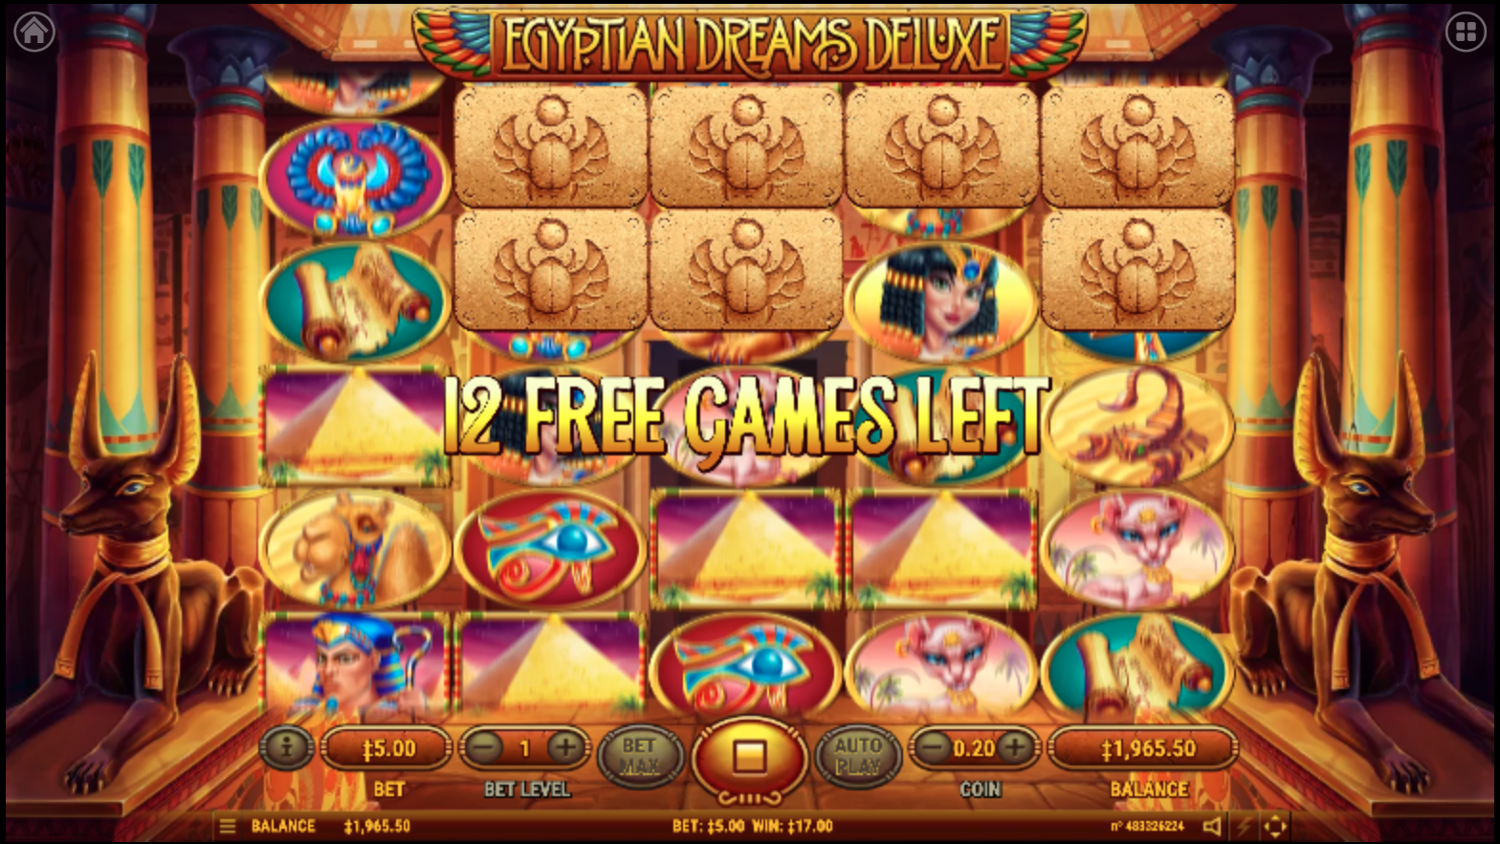 Egyptian Dreams Deluxe & 4 Scatter symbols hit